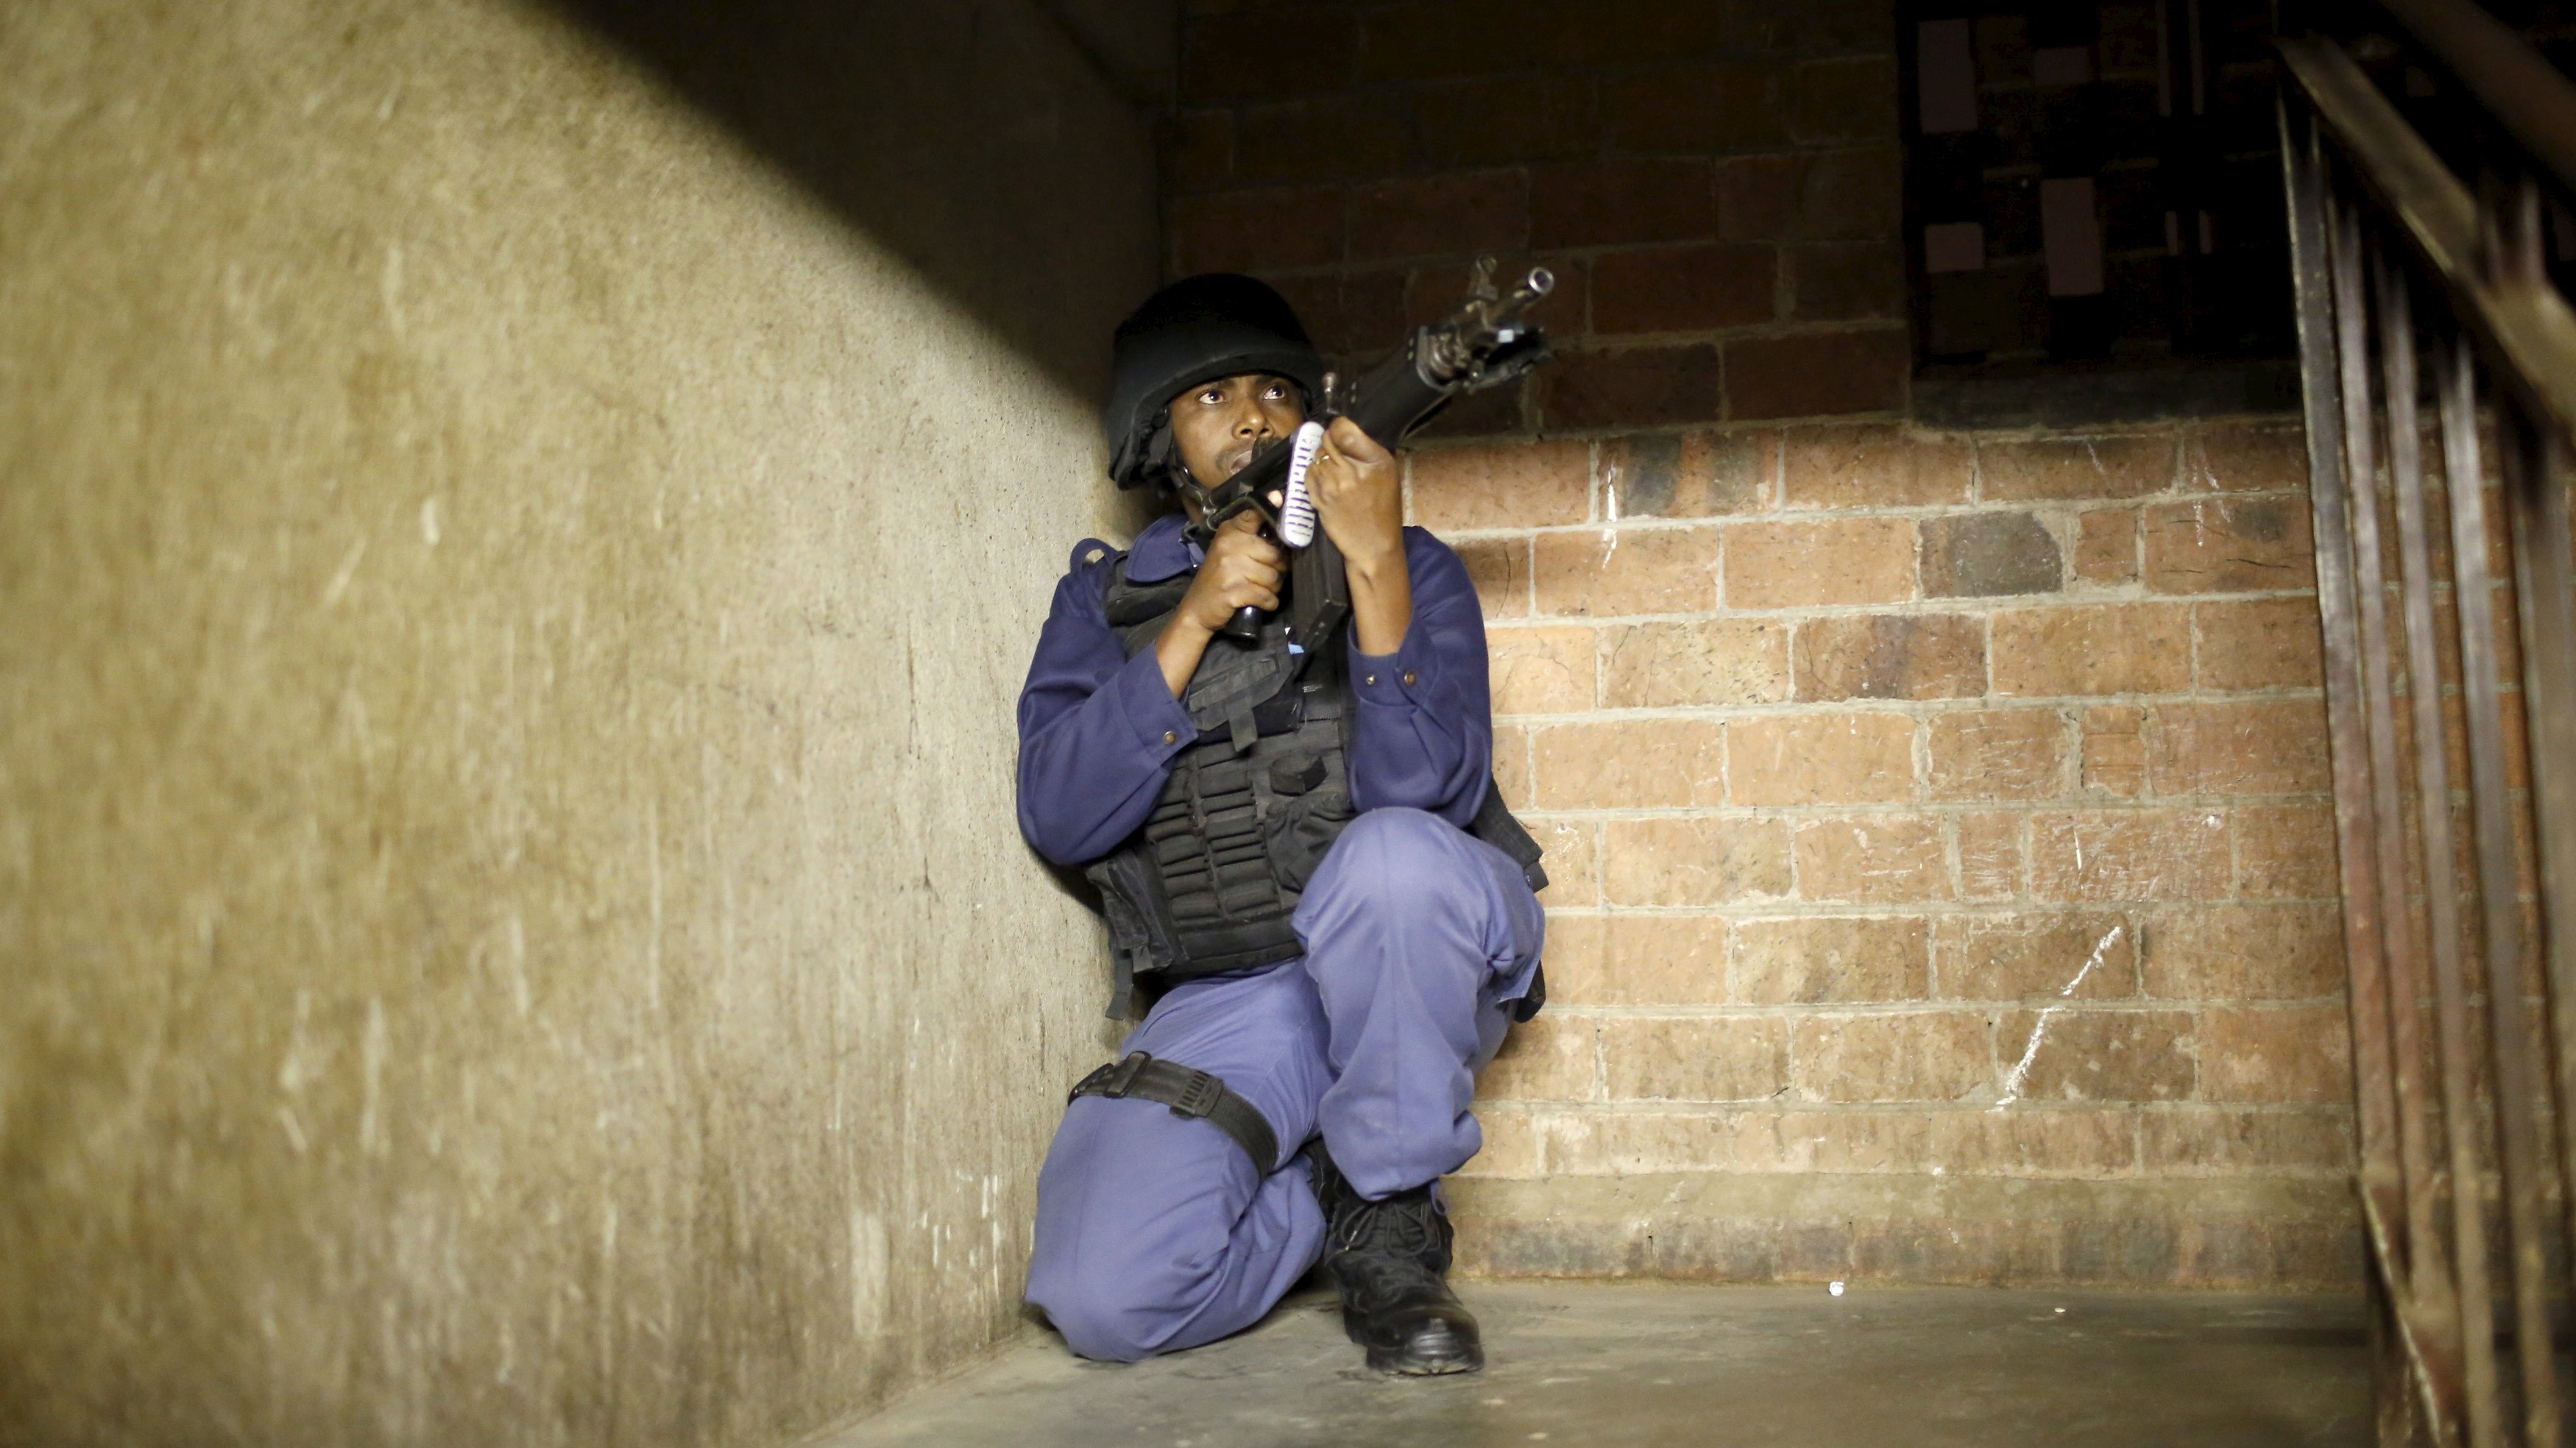 Controversial South African 'Security' Operation Nets 1,650 Undocumented Migrants